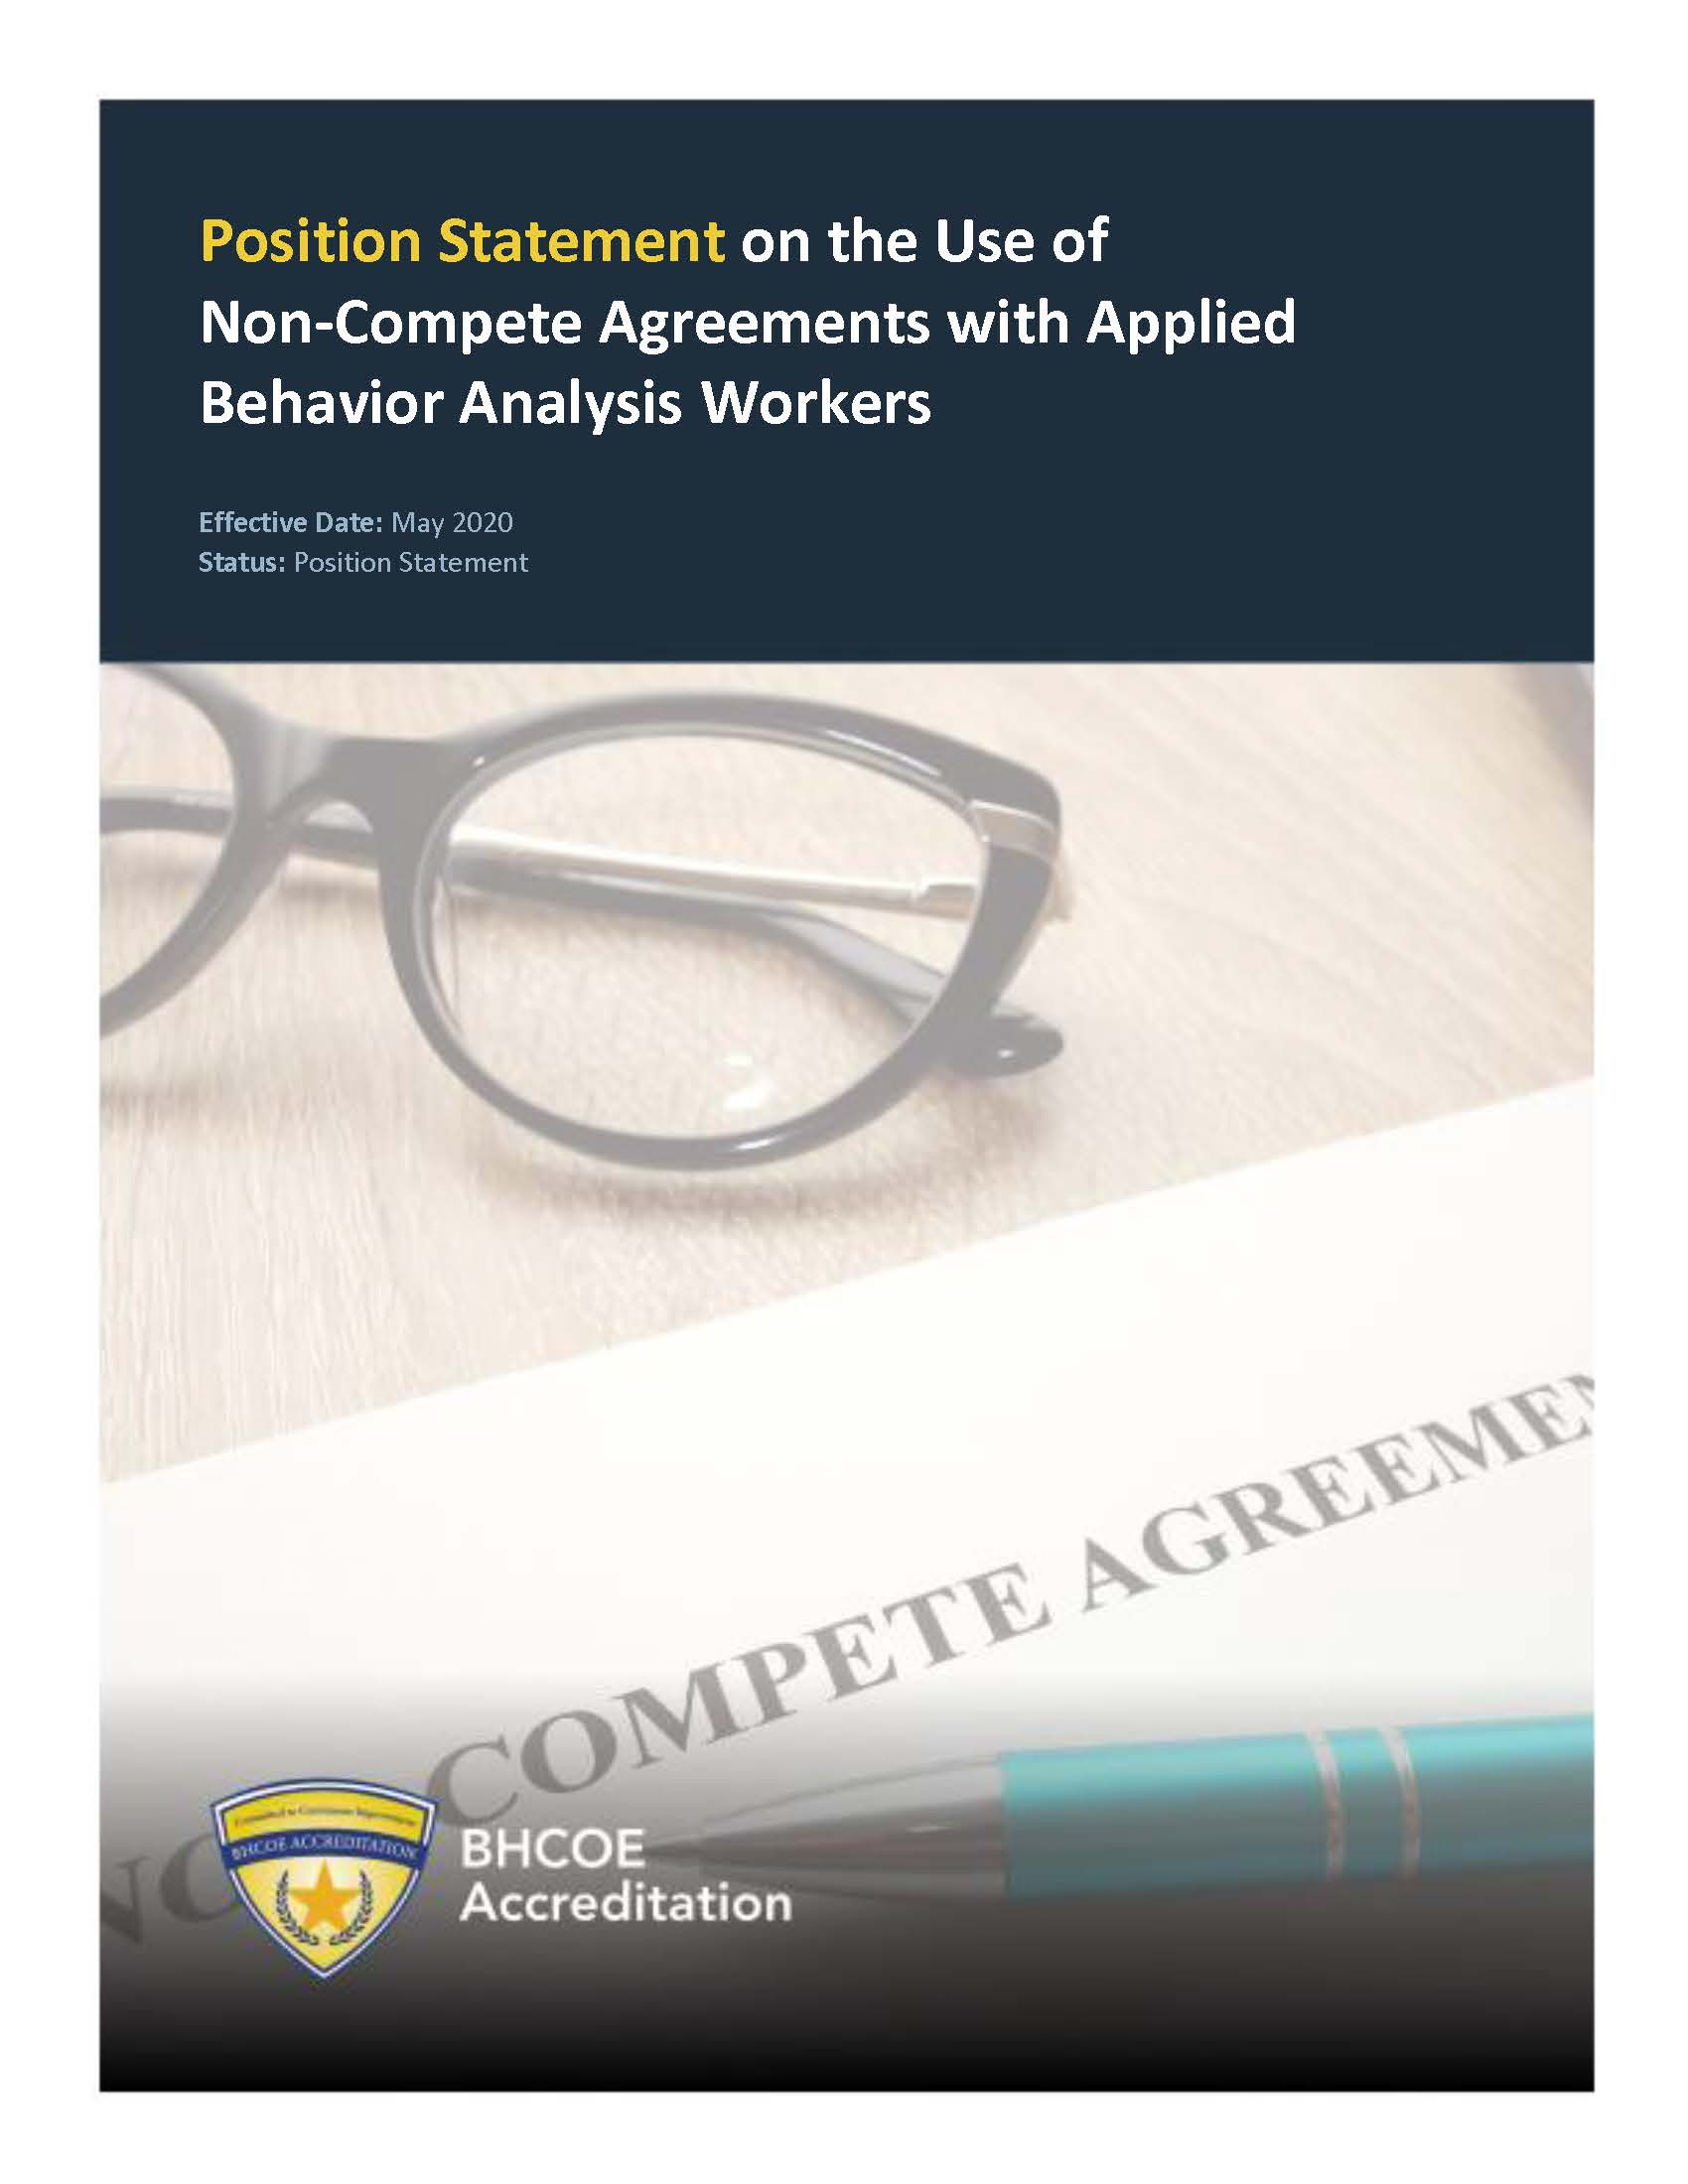 Position Statement on the Use of Non-Compete Agreements with Applied Behavior Analysis Workers